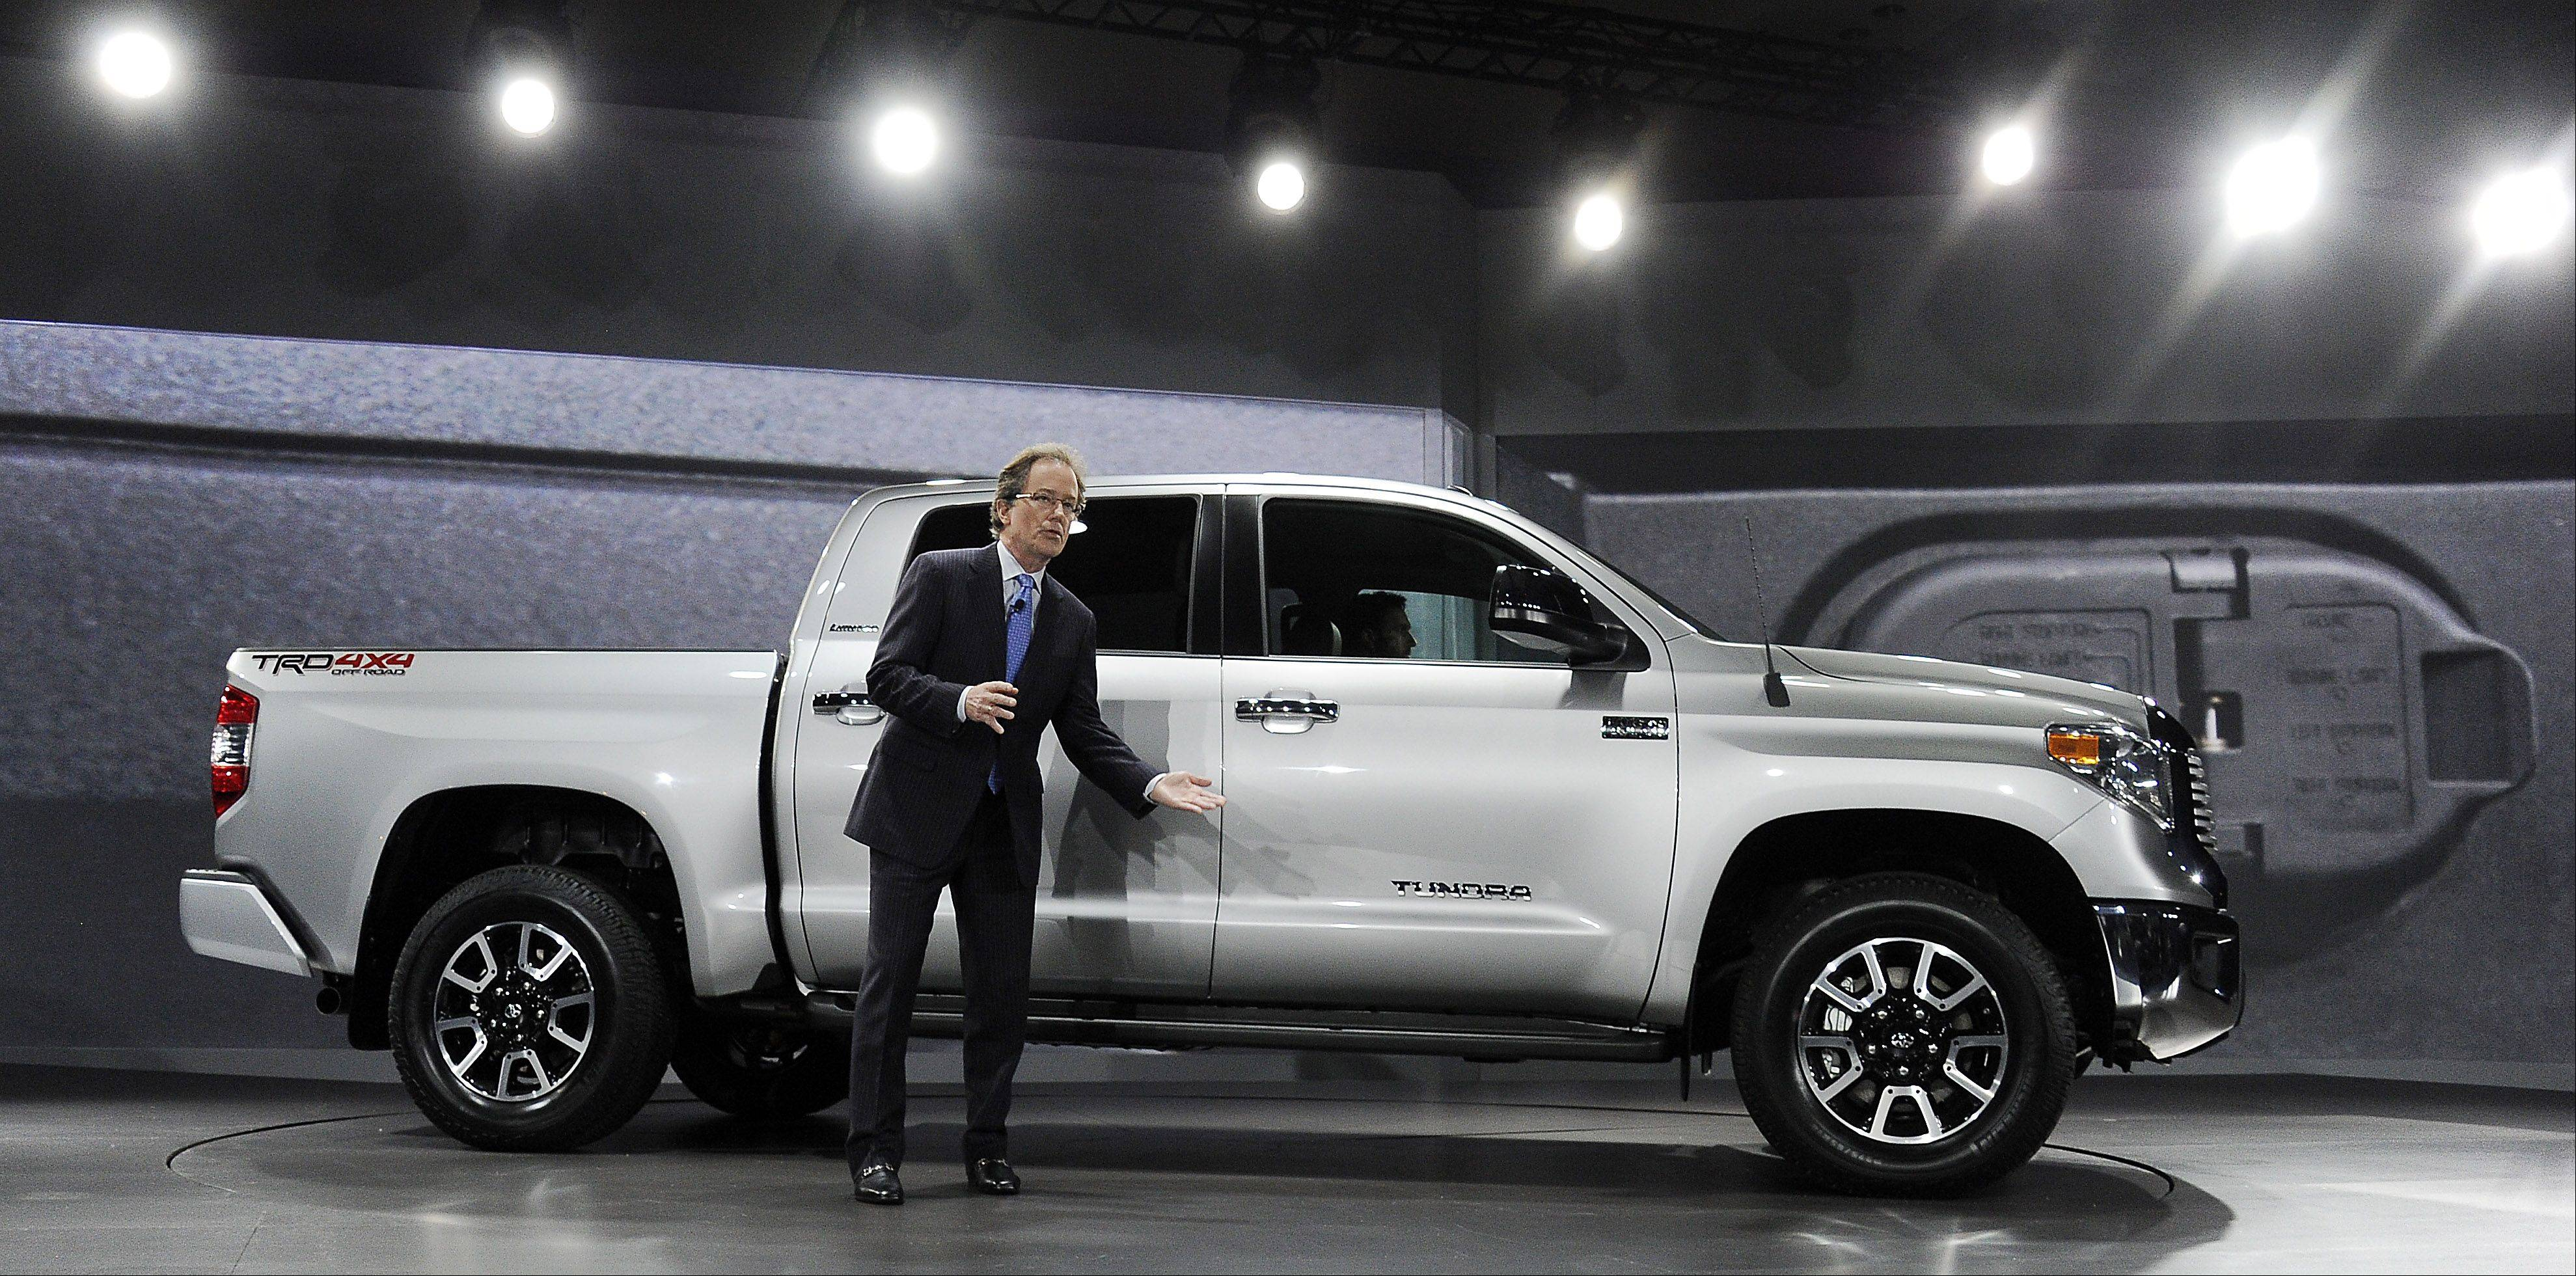 Bill Fay, Toyota group vice president and general manager, shows off the new Tundra four-wheel drive truck at the Chicago Auto Show on Thursday.